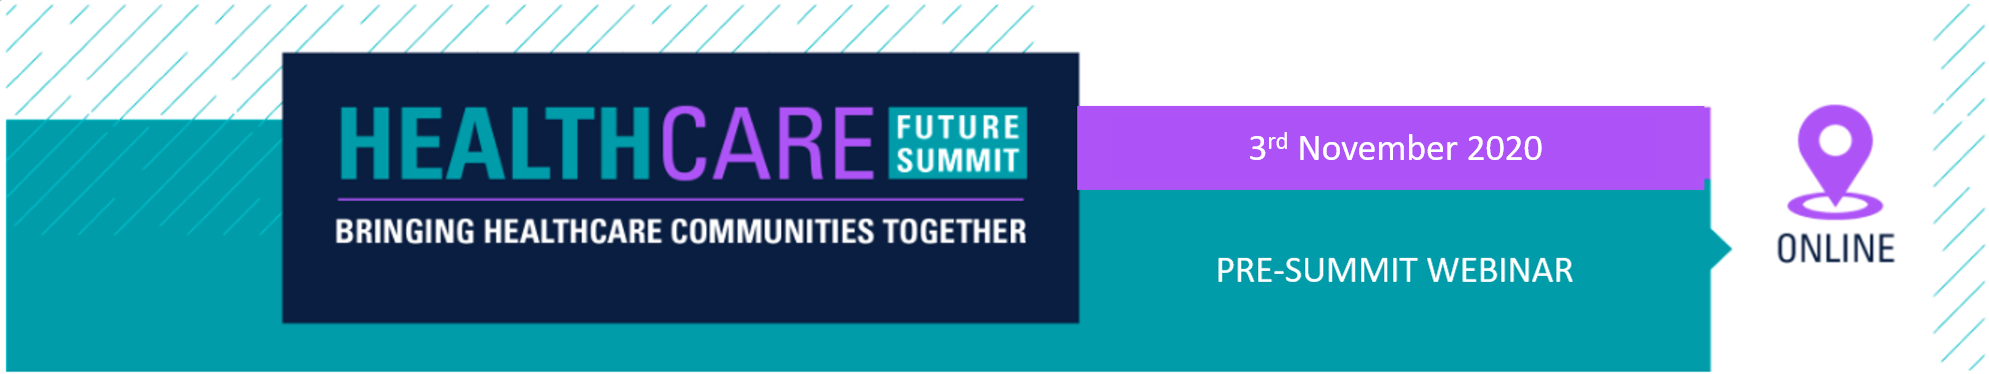 Healthcare Future Summit (NOV 03, 2020)